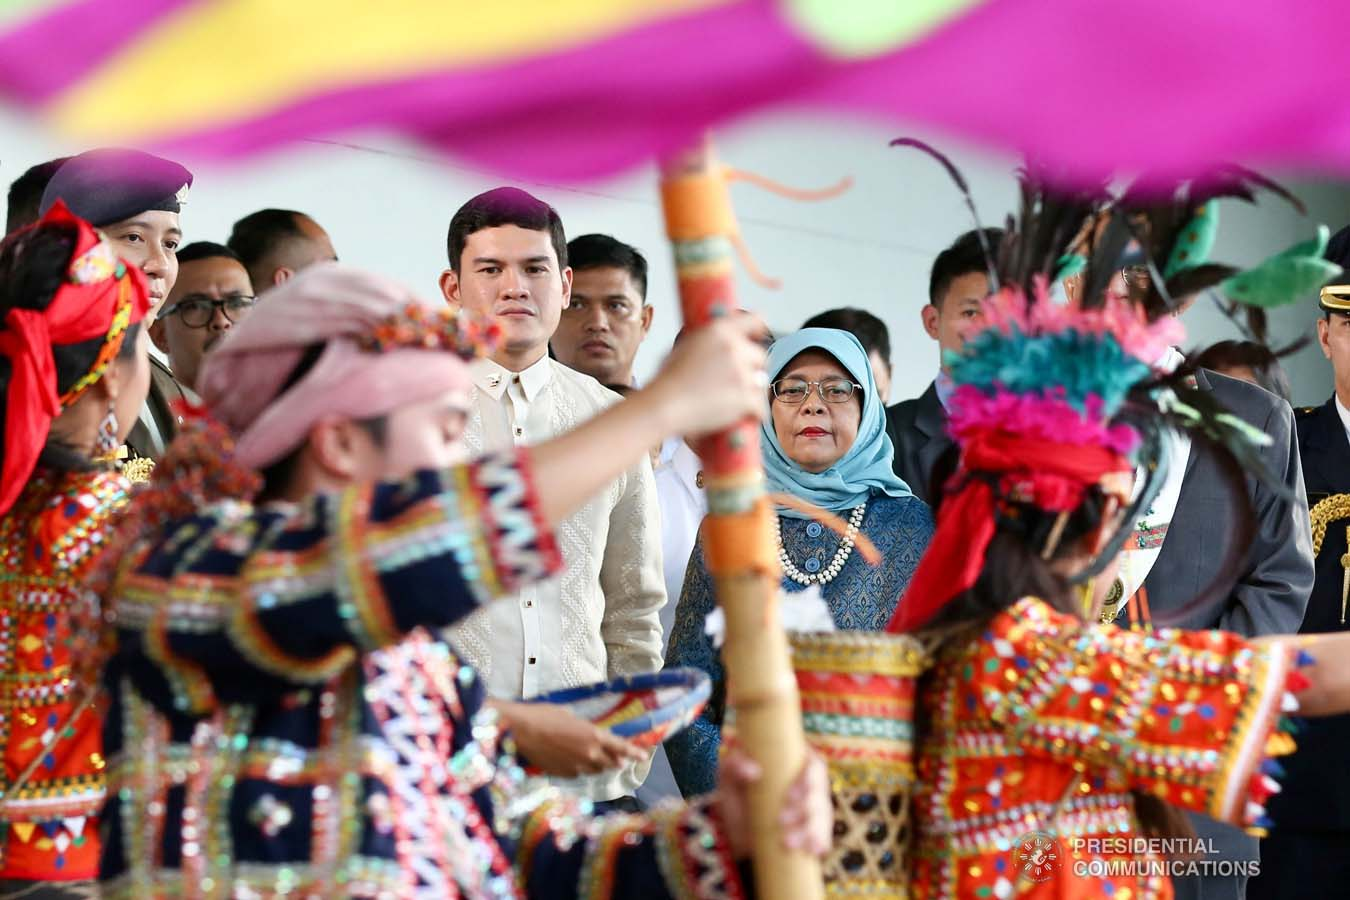 Republic of Singapore President Halimah Yacob is accompanied by Davao City Vice Mayor Sebastian Duterte as she is entertained by cultural performers upon her arrival at the Davao International Airport in Davao City on September 10, 2019. RICHARD MADELO/PRESIDENTIAL PHOTO